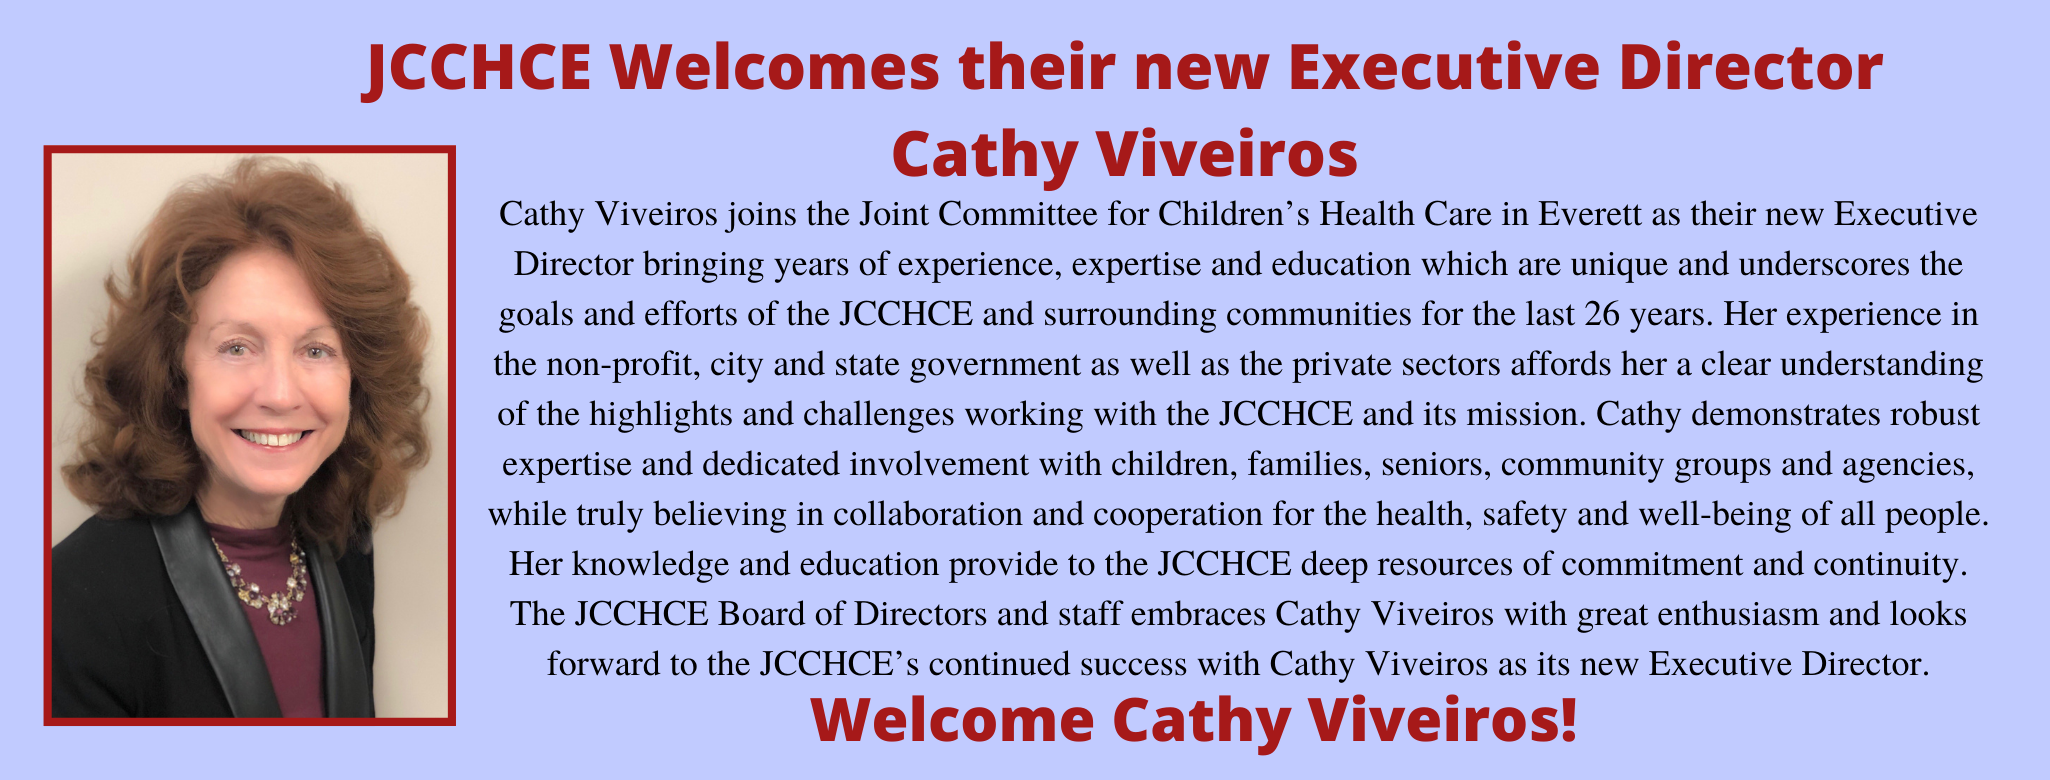 JCCHCE Welcomes Cathy Viveiros